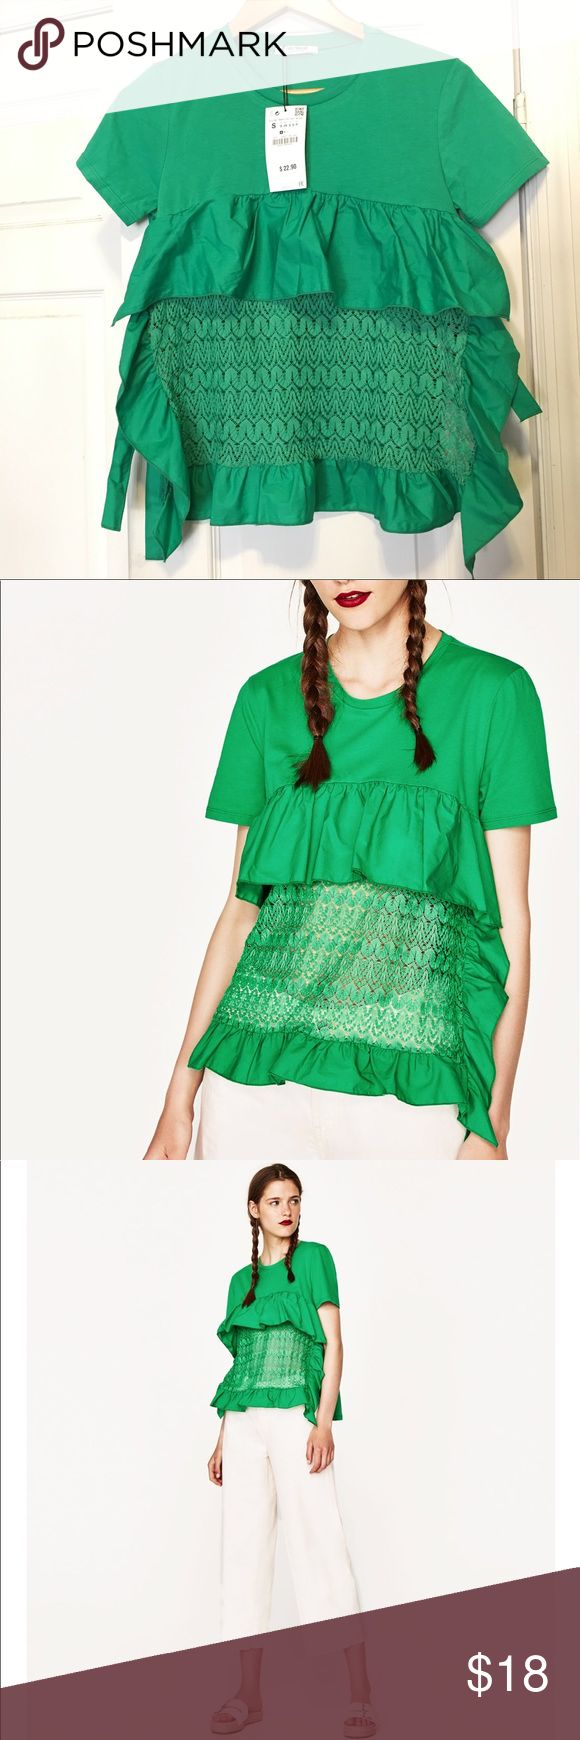 NWT sz S Green Zara Combined Crochet Tee short slv NWT bold green Zara Tee. S/S TRF collection. Round Neck w/short sleeves. Ruffle top and see-through center. Wide and flowy. Two ties--one on each side. Size S (0-4 due to the style). Back is solid tee shirt material. Color may vary, depending on lighting. Comes from a smoke-free + pet free + drug free home. Never worn. Bought, but too lazy to return. Zara Tops Tees - Short Sleeve